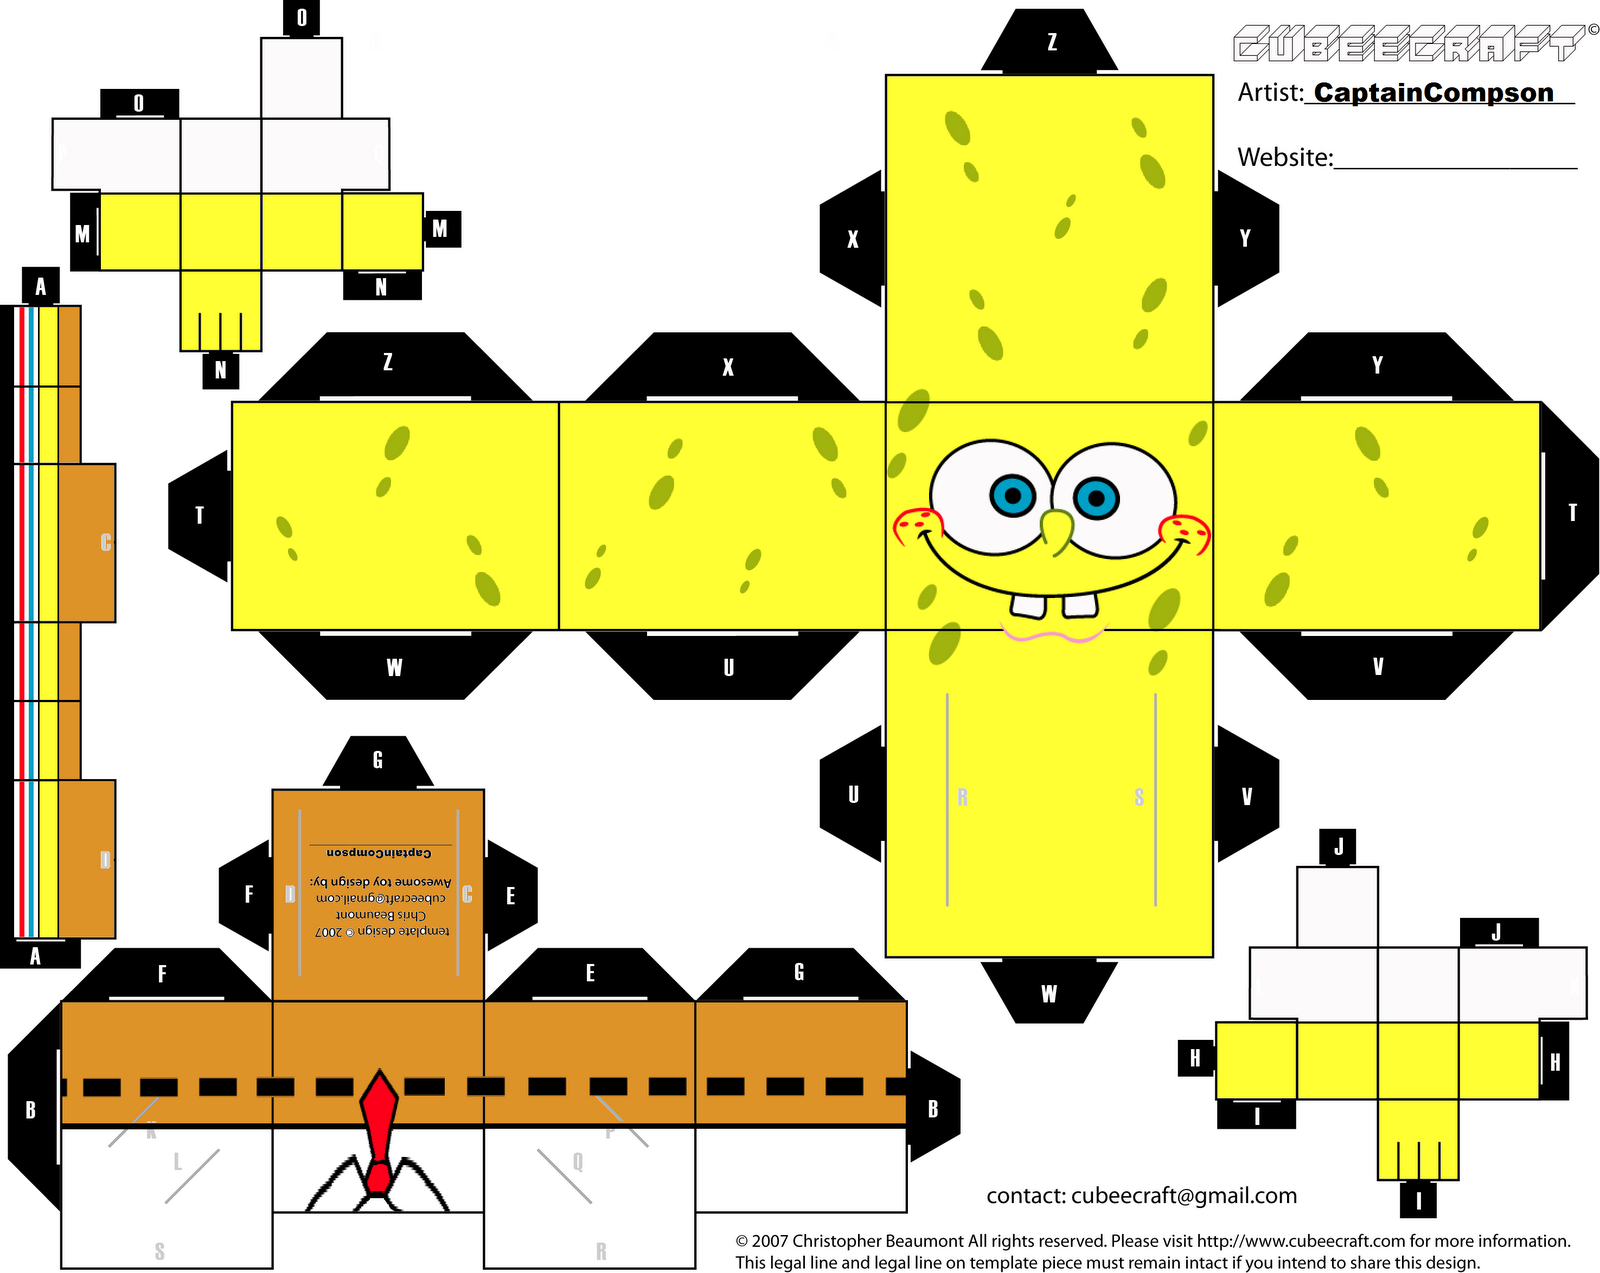 http://captaincompson.deviantart.com/art/Spongebob-Cubeecraft ...